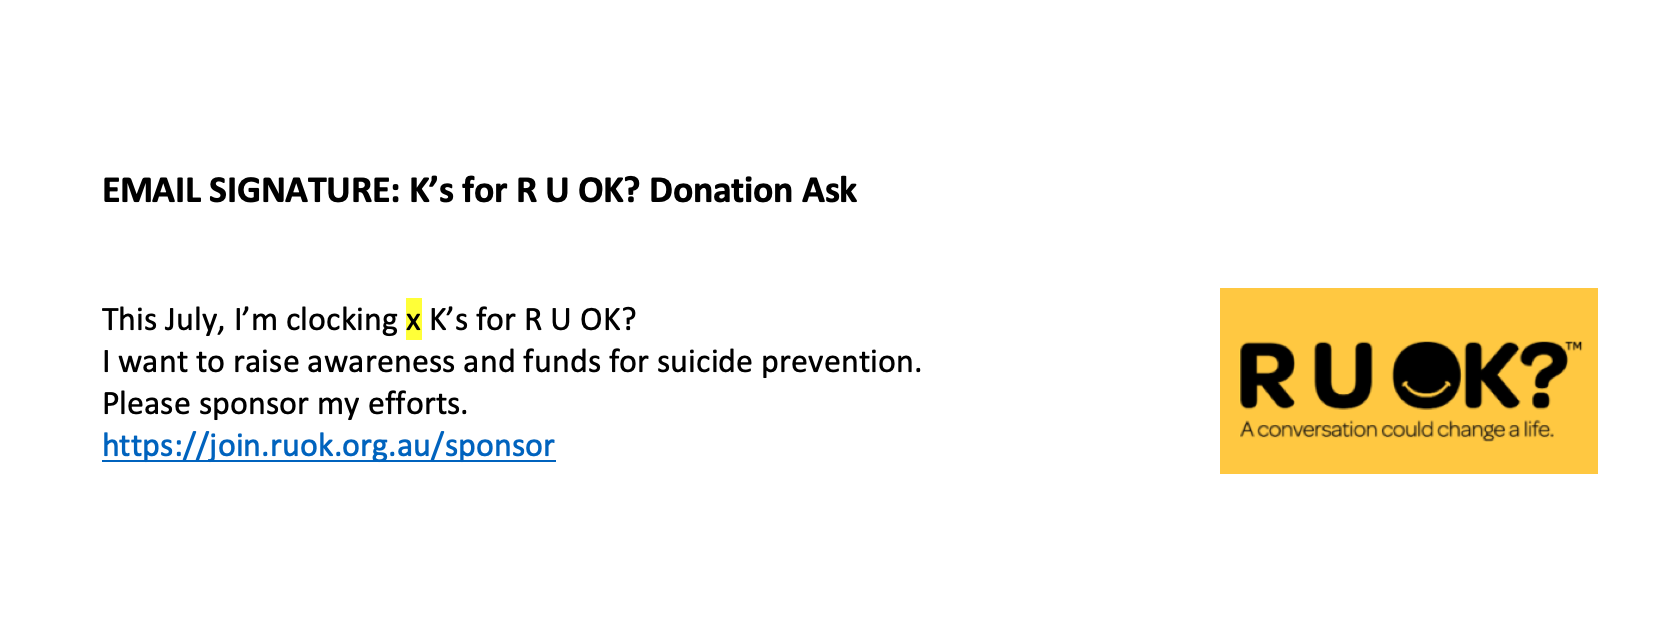 Email Signature - Donation Ask